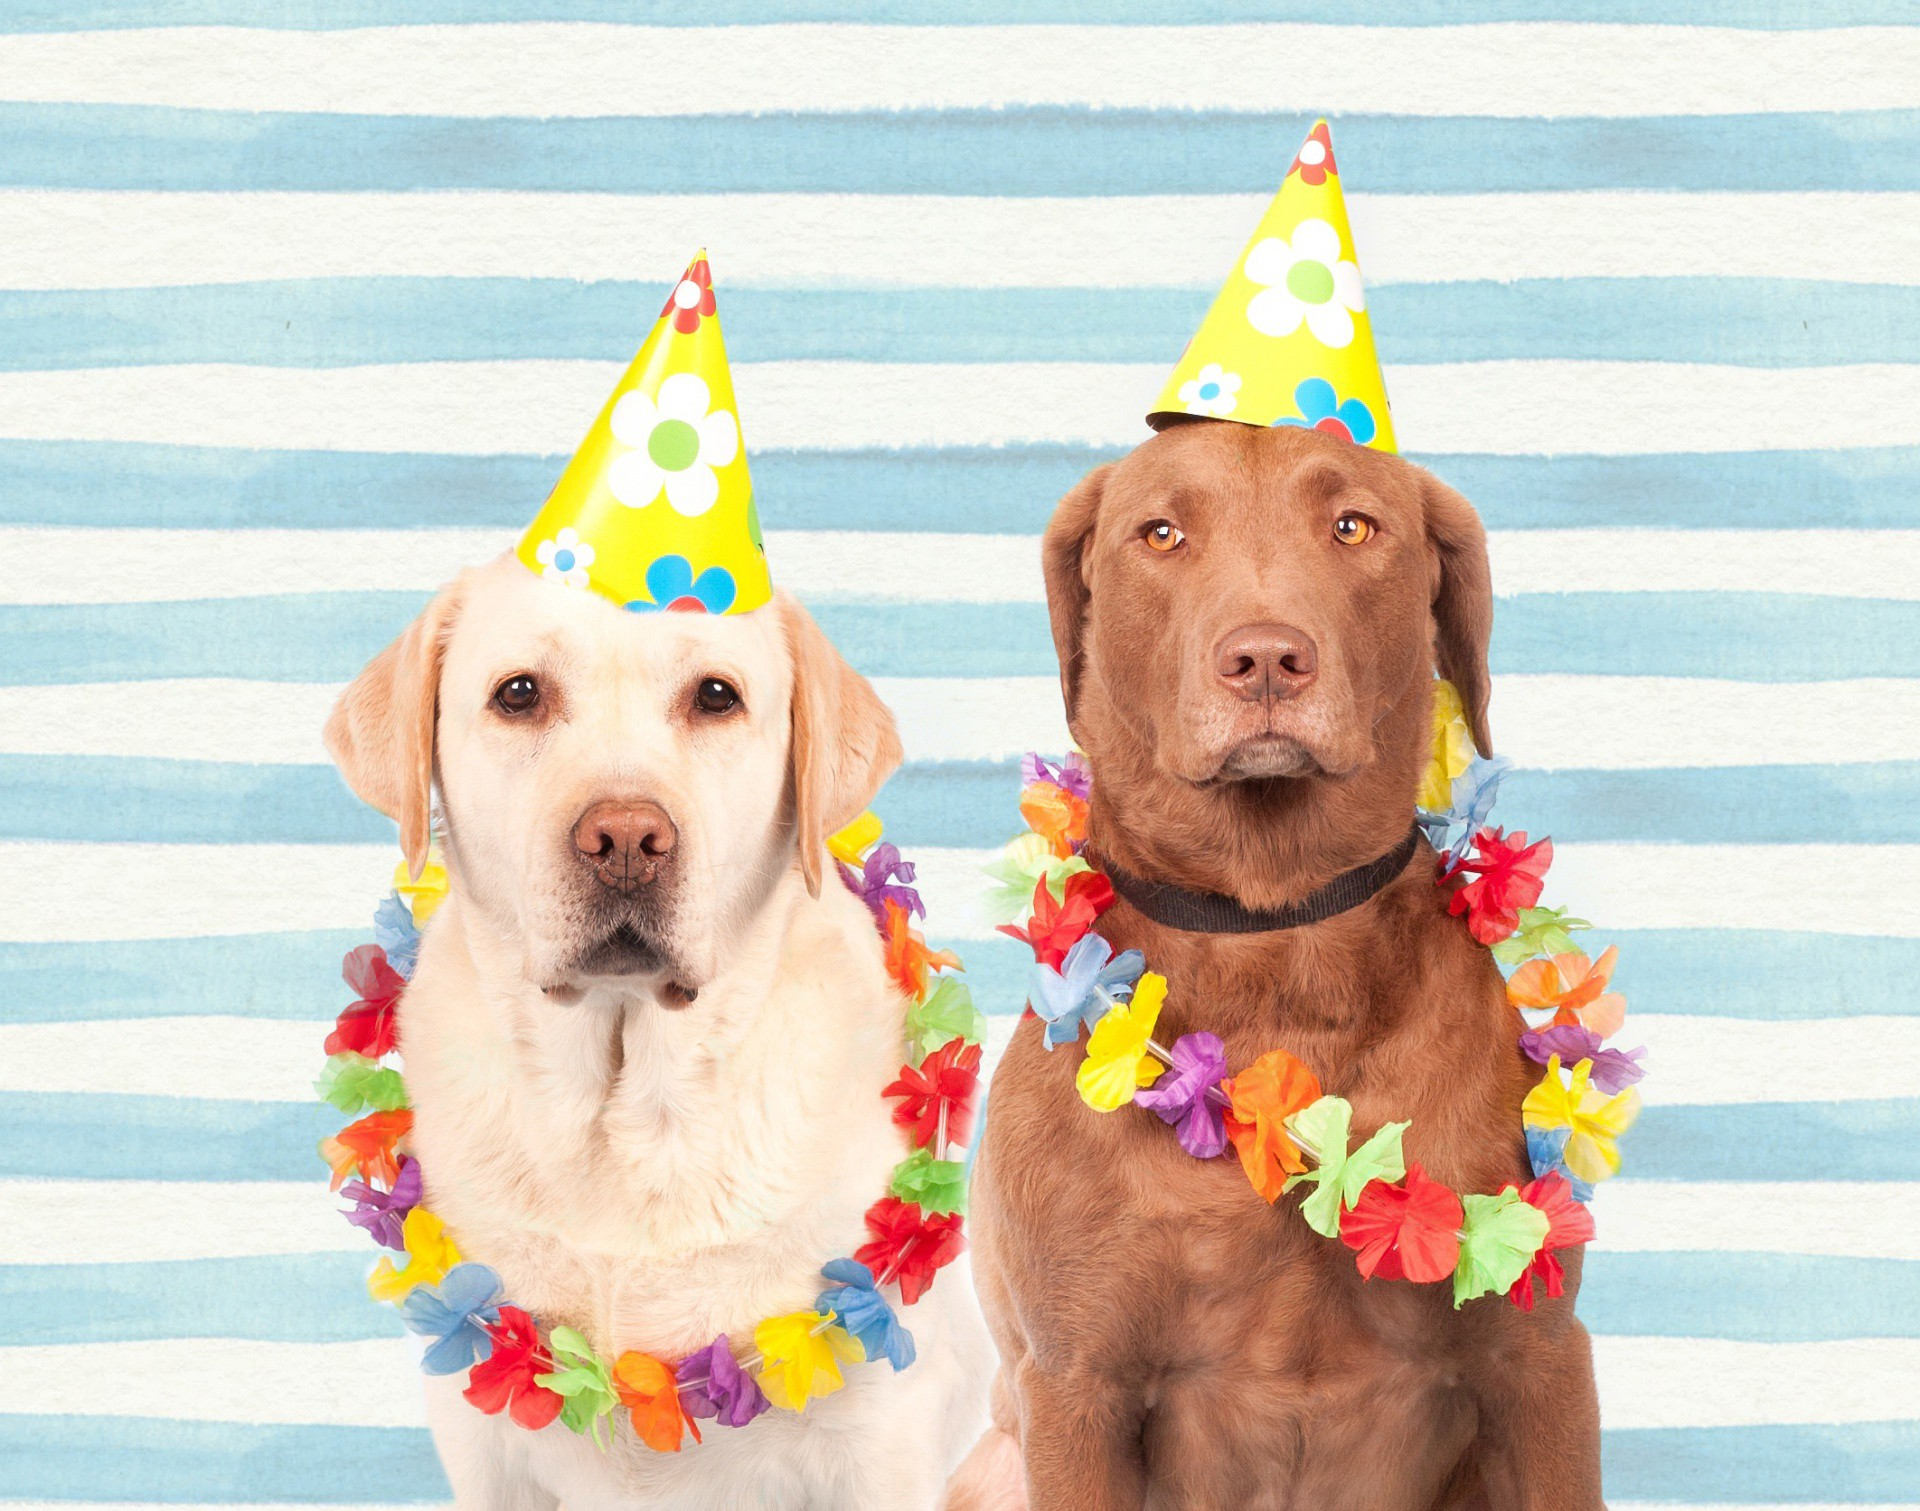 Two Labrador Retriever dogs in Hawaiian leis and party hats, looking solemnly into the camera.